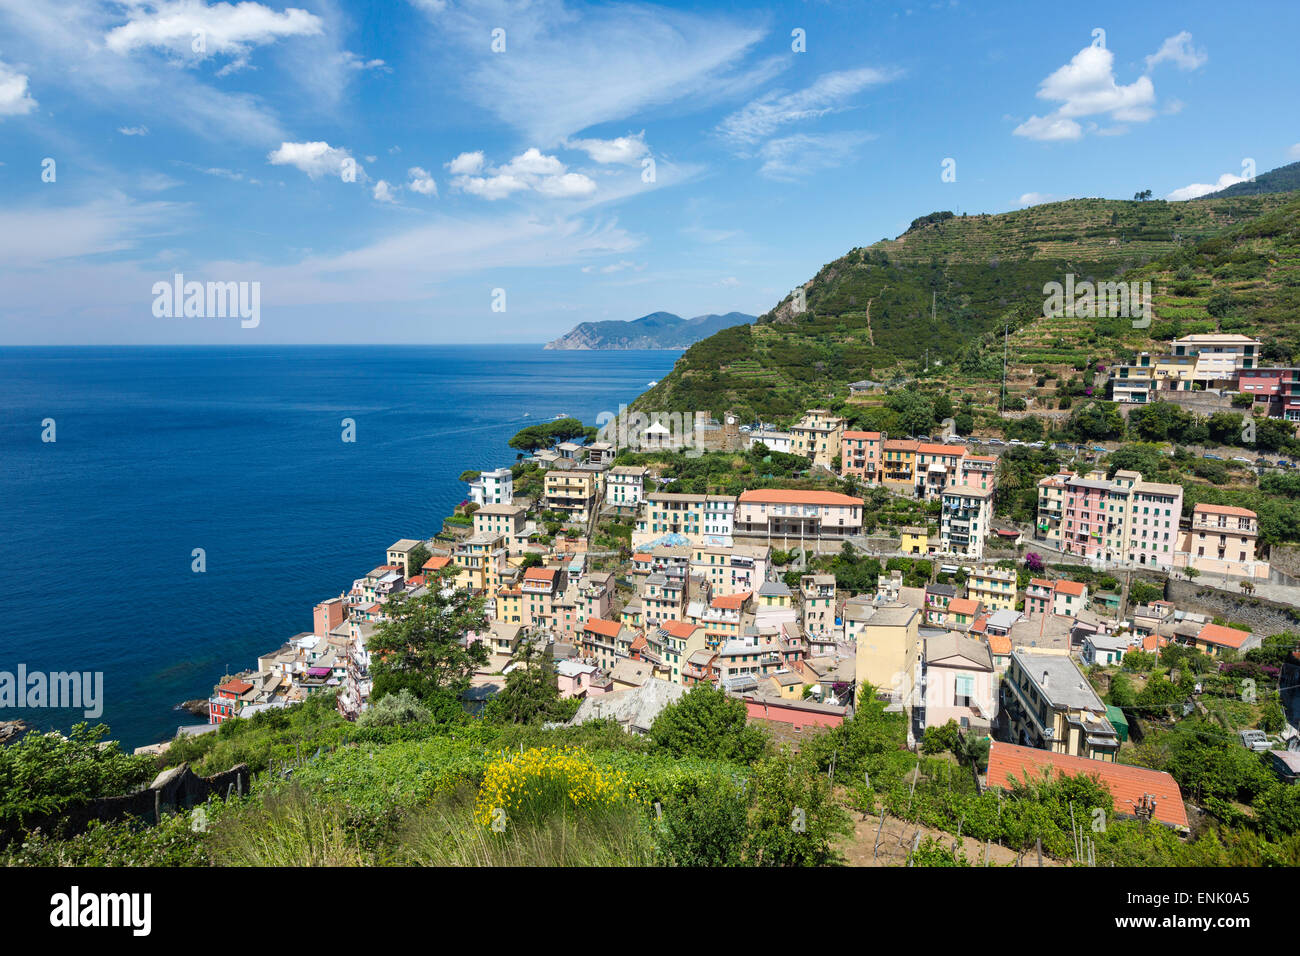 Clifftop village of Riomaggiore, Cinque Terre, UNESCO World Heritage Site, Liguria, Italy, Europe - Stock Image